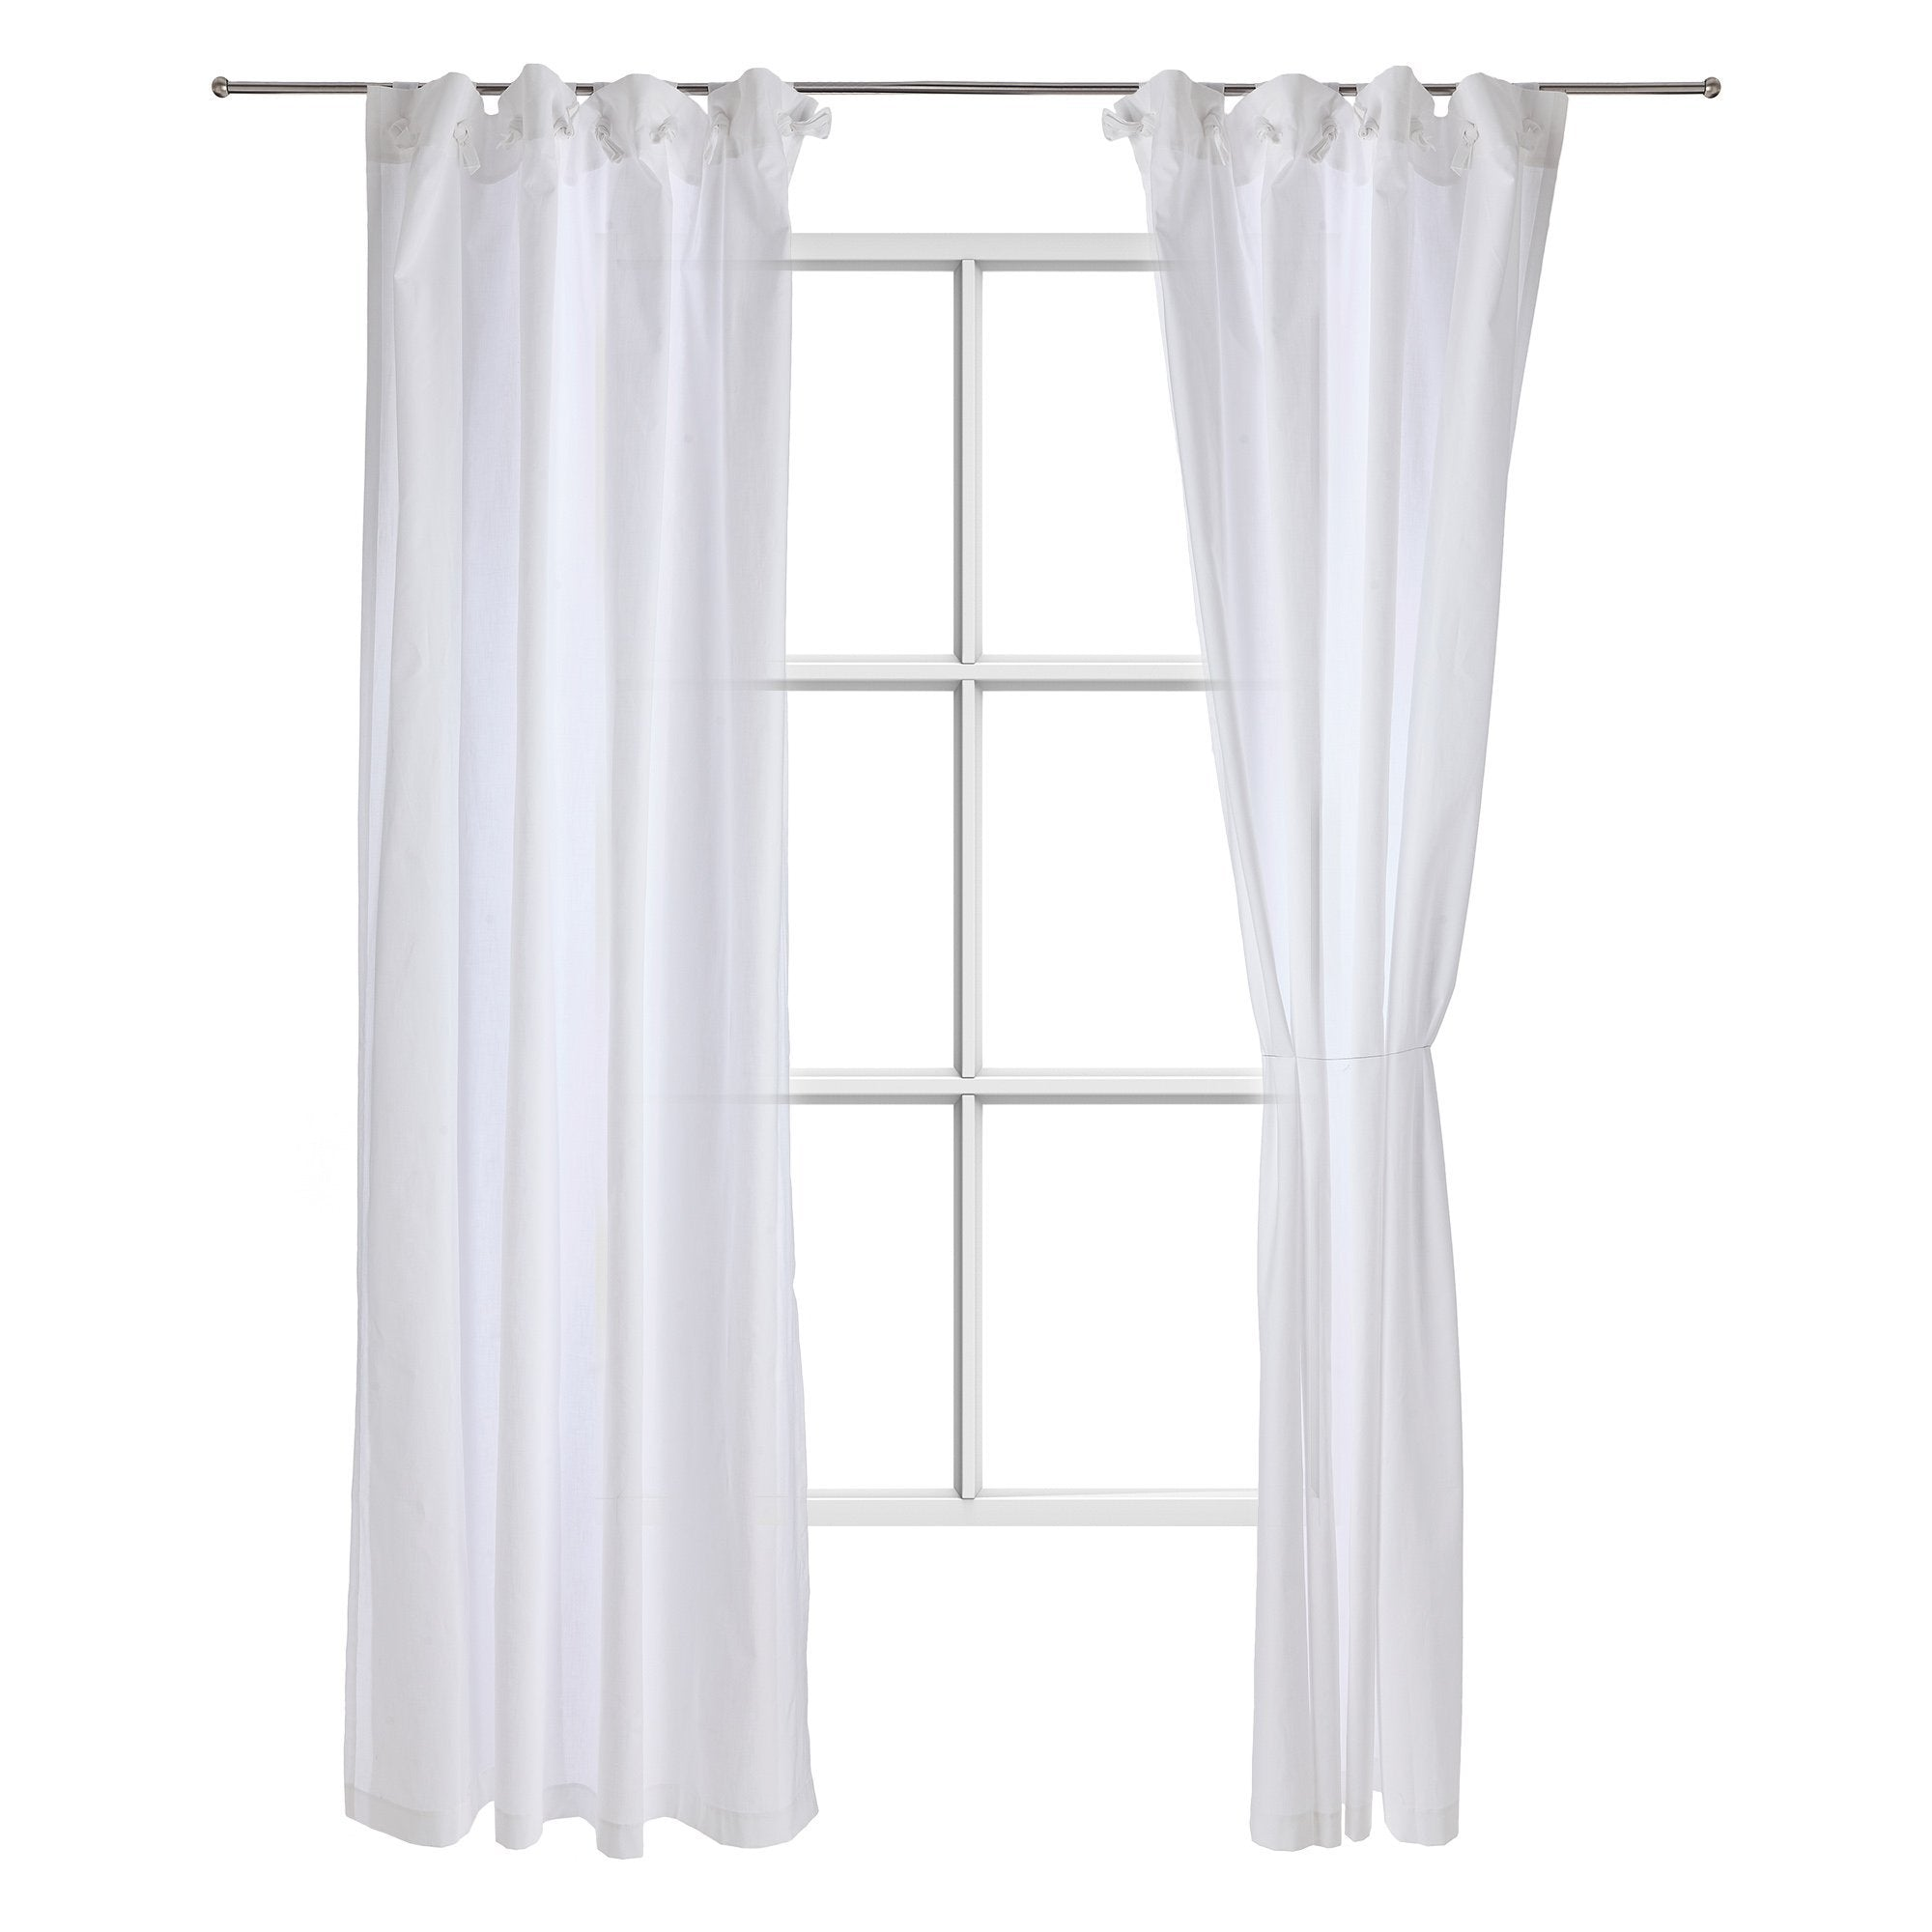 Maninho curtain, white, 100% cotton